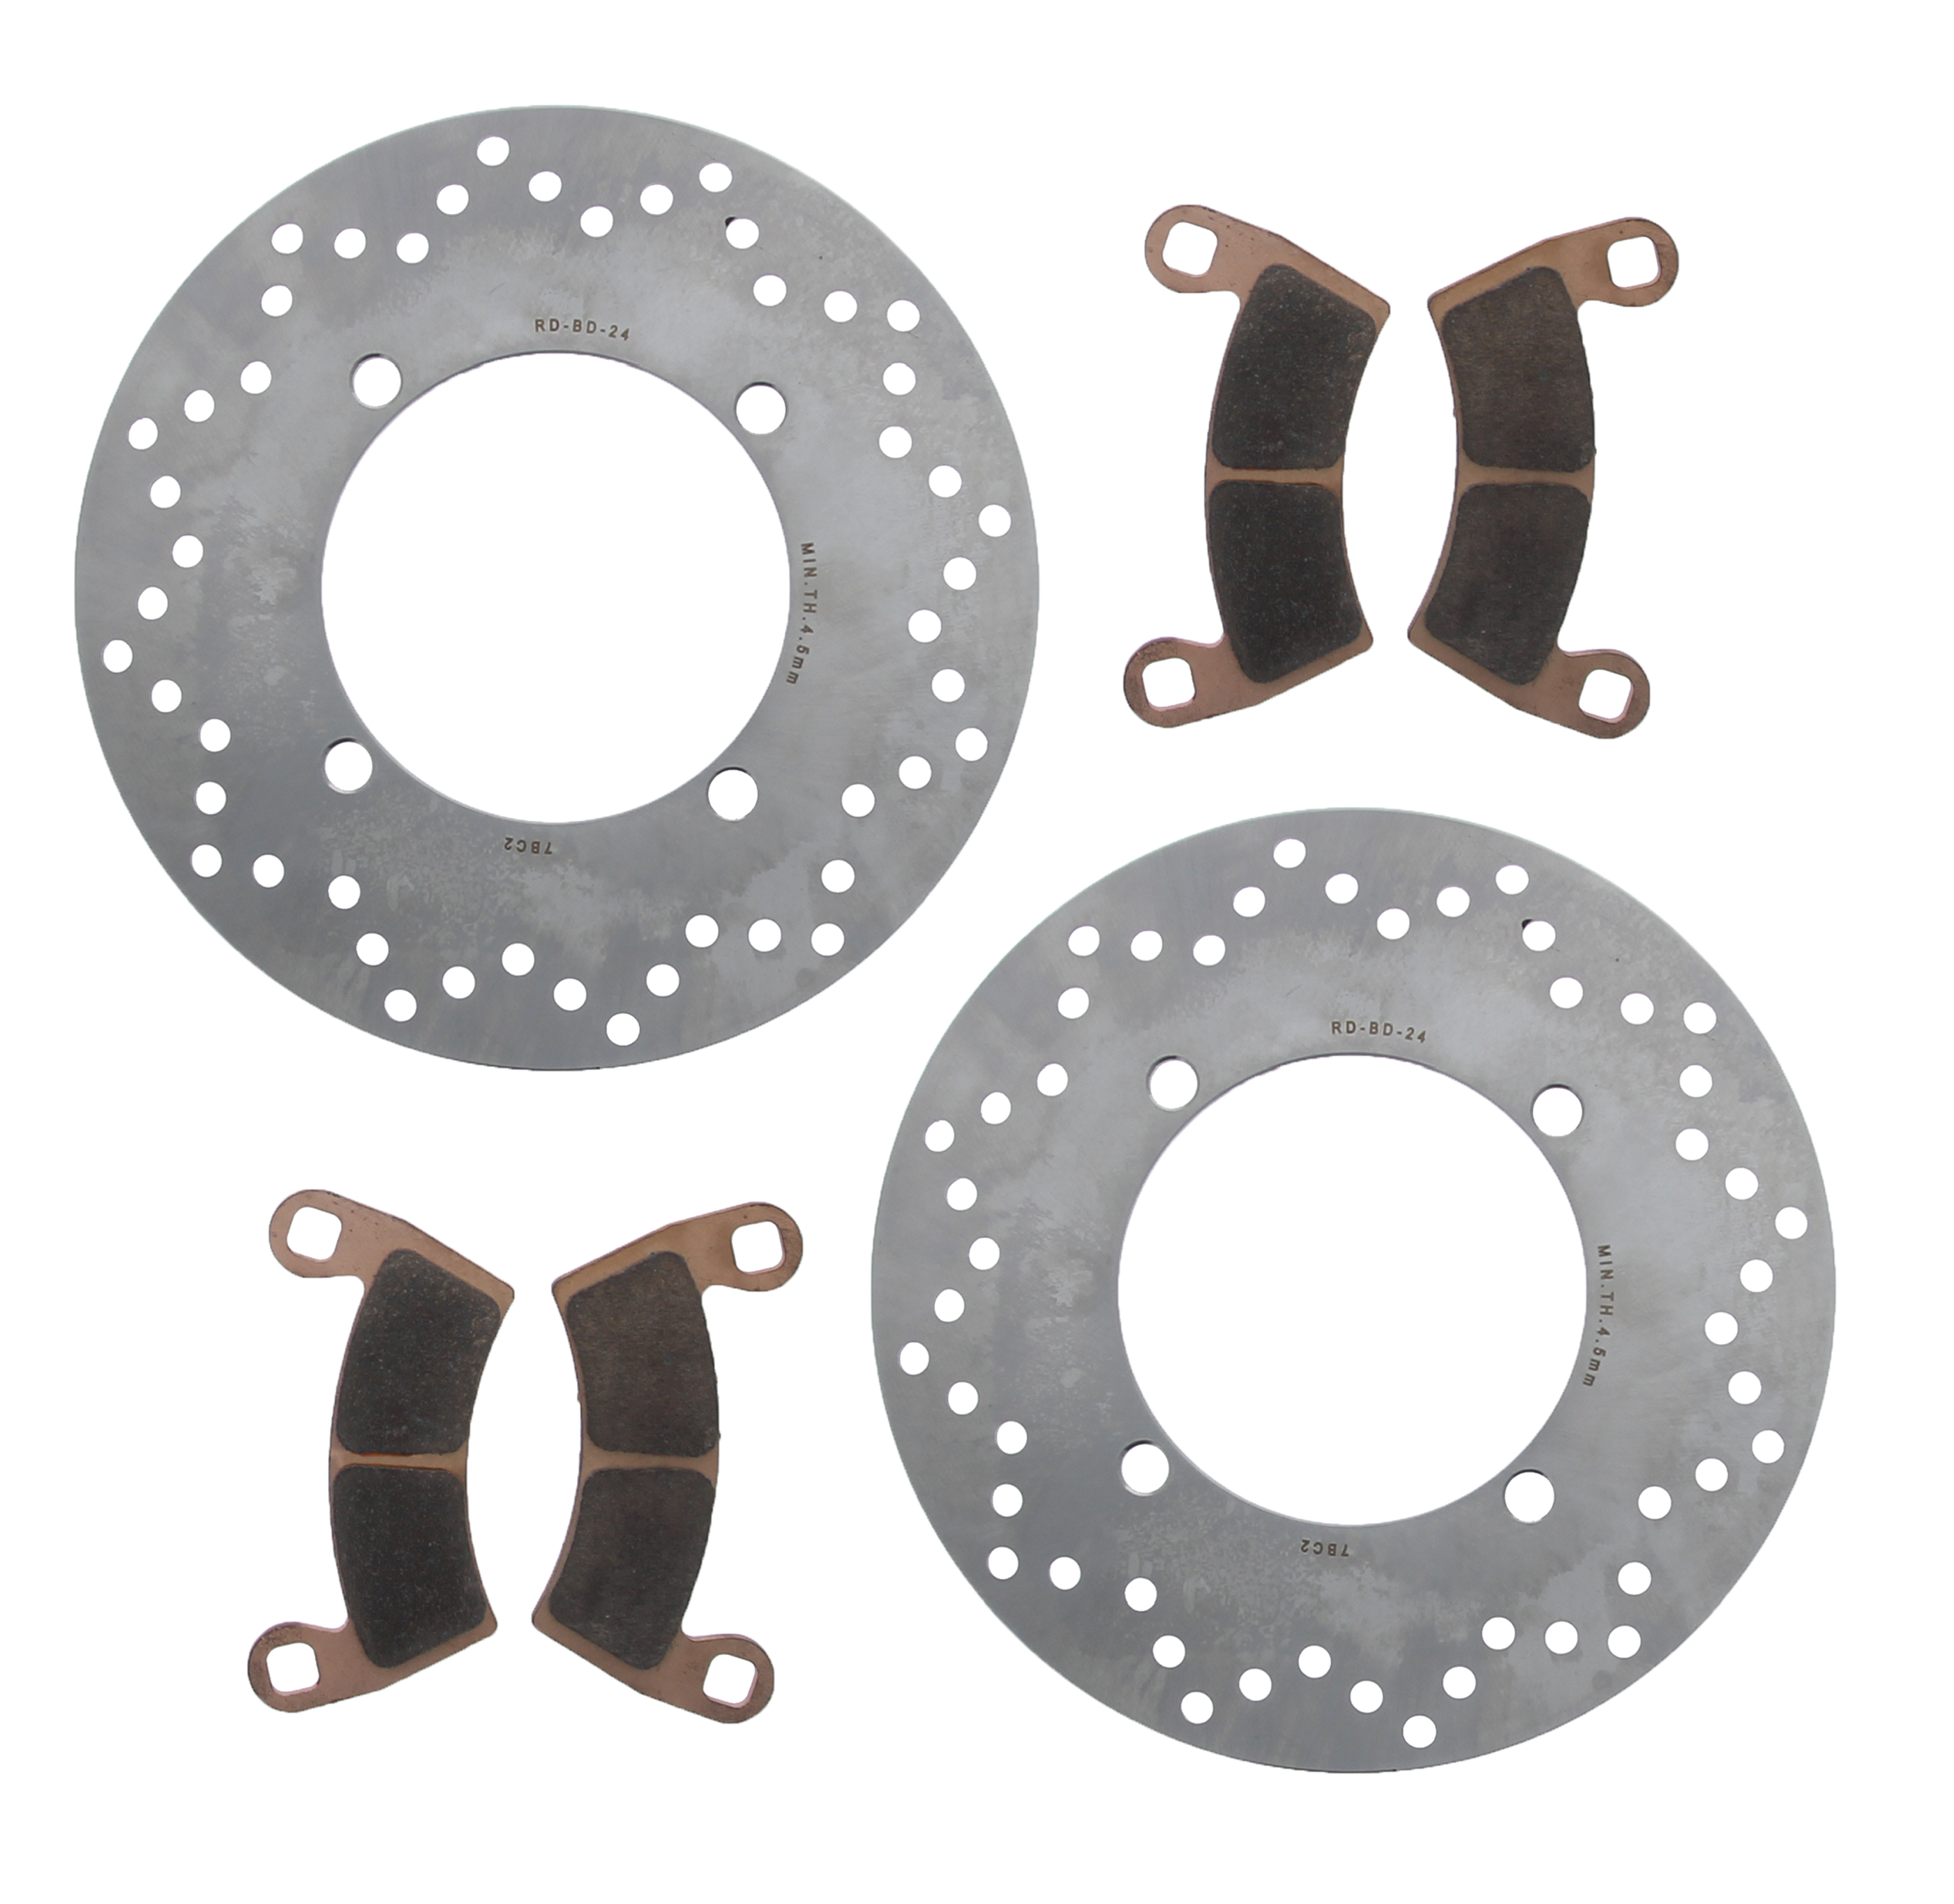 FRONT BRAKE DISC ROTOR FITS Polaris RANGER XP 800 2012